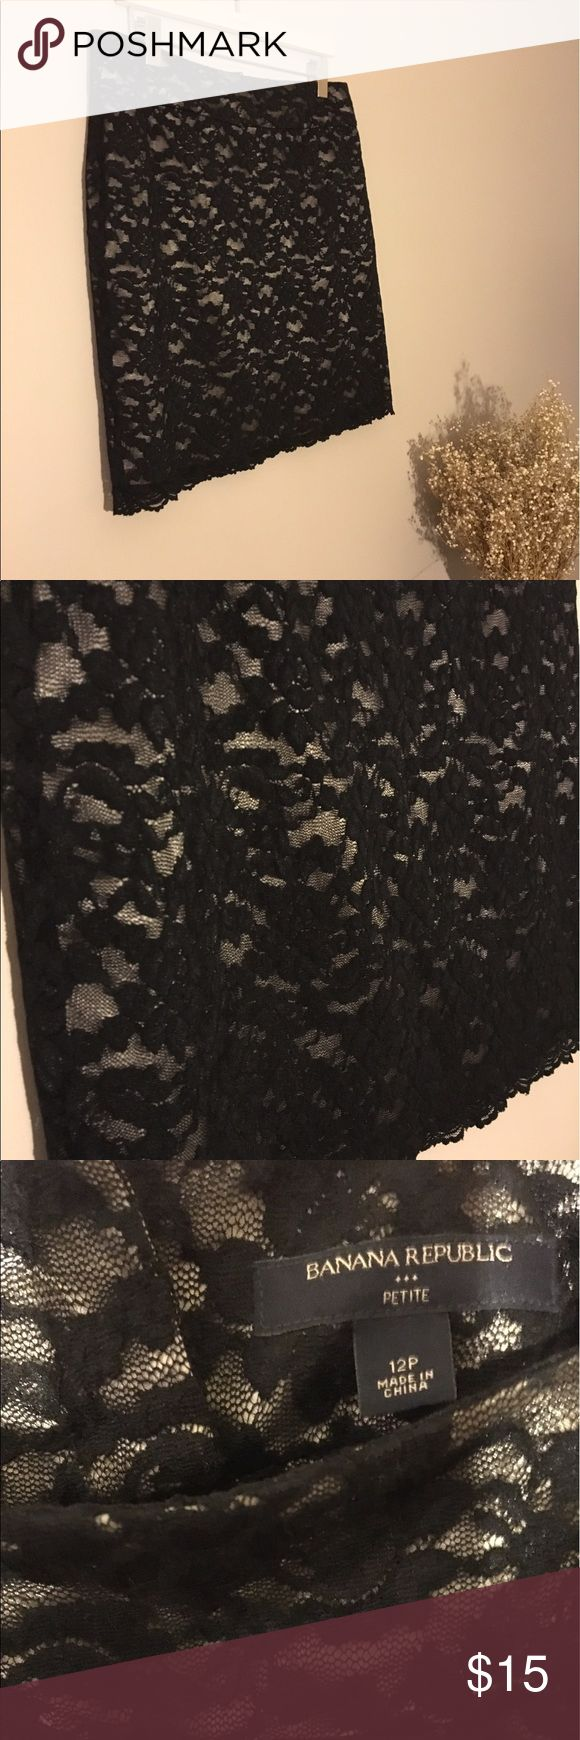 Banana Republic Black Lace Pencil Skirt This pencil skirt fits flatteringly at the waist. It has a satin finish beige underlay with a black lace overlay. Worn fewer than five times and in perfect condition. Banana Republic Skirts Pencil